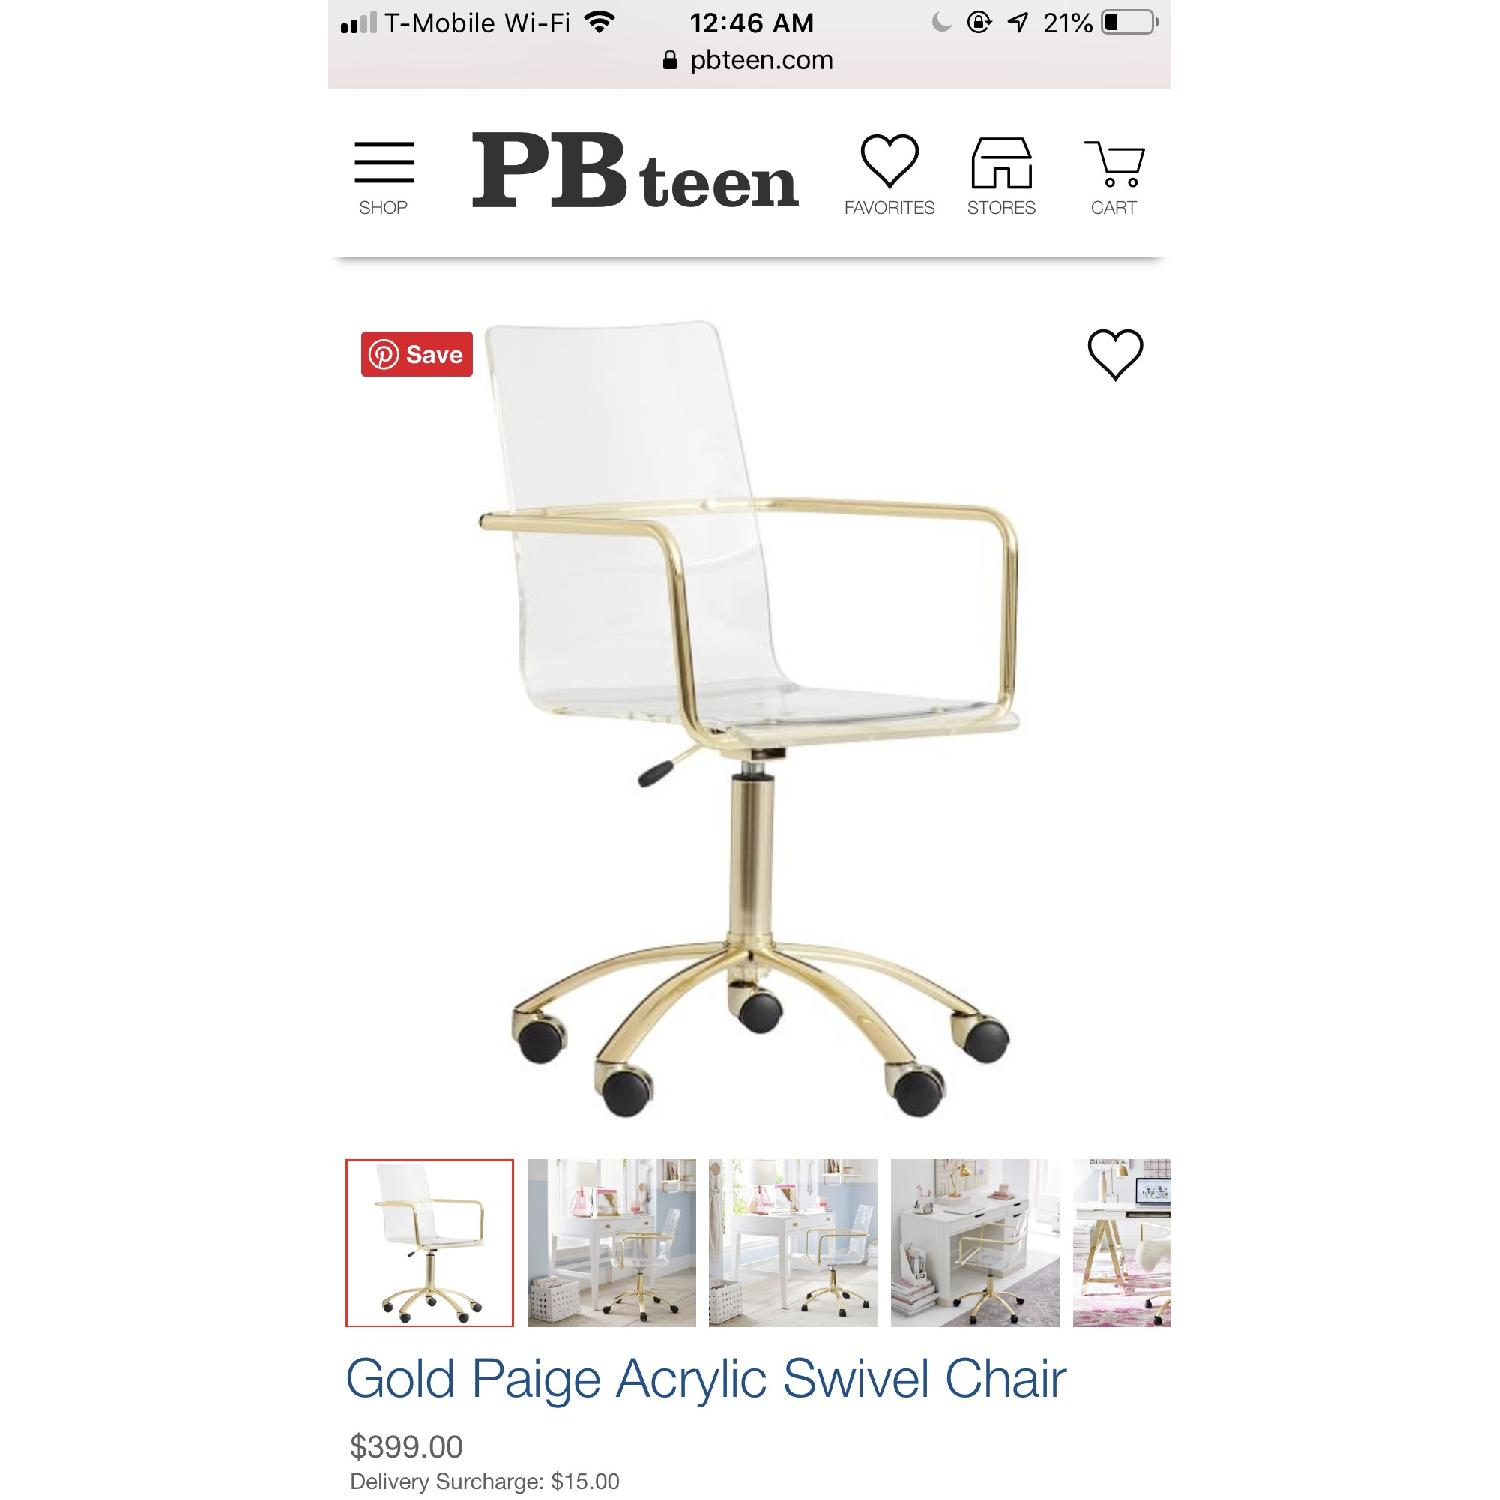 Pottery Barn Gold Paige Acrylic Swivel Chair-0